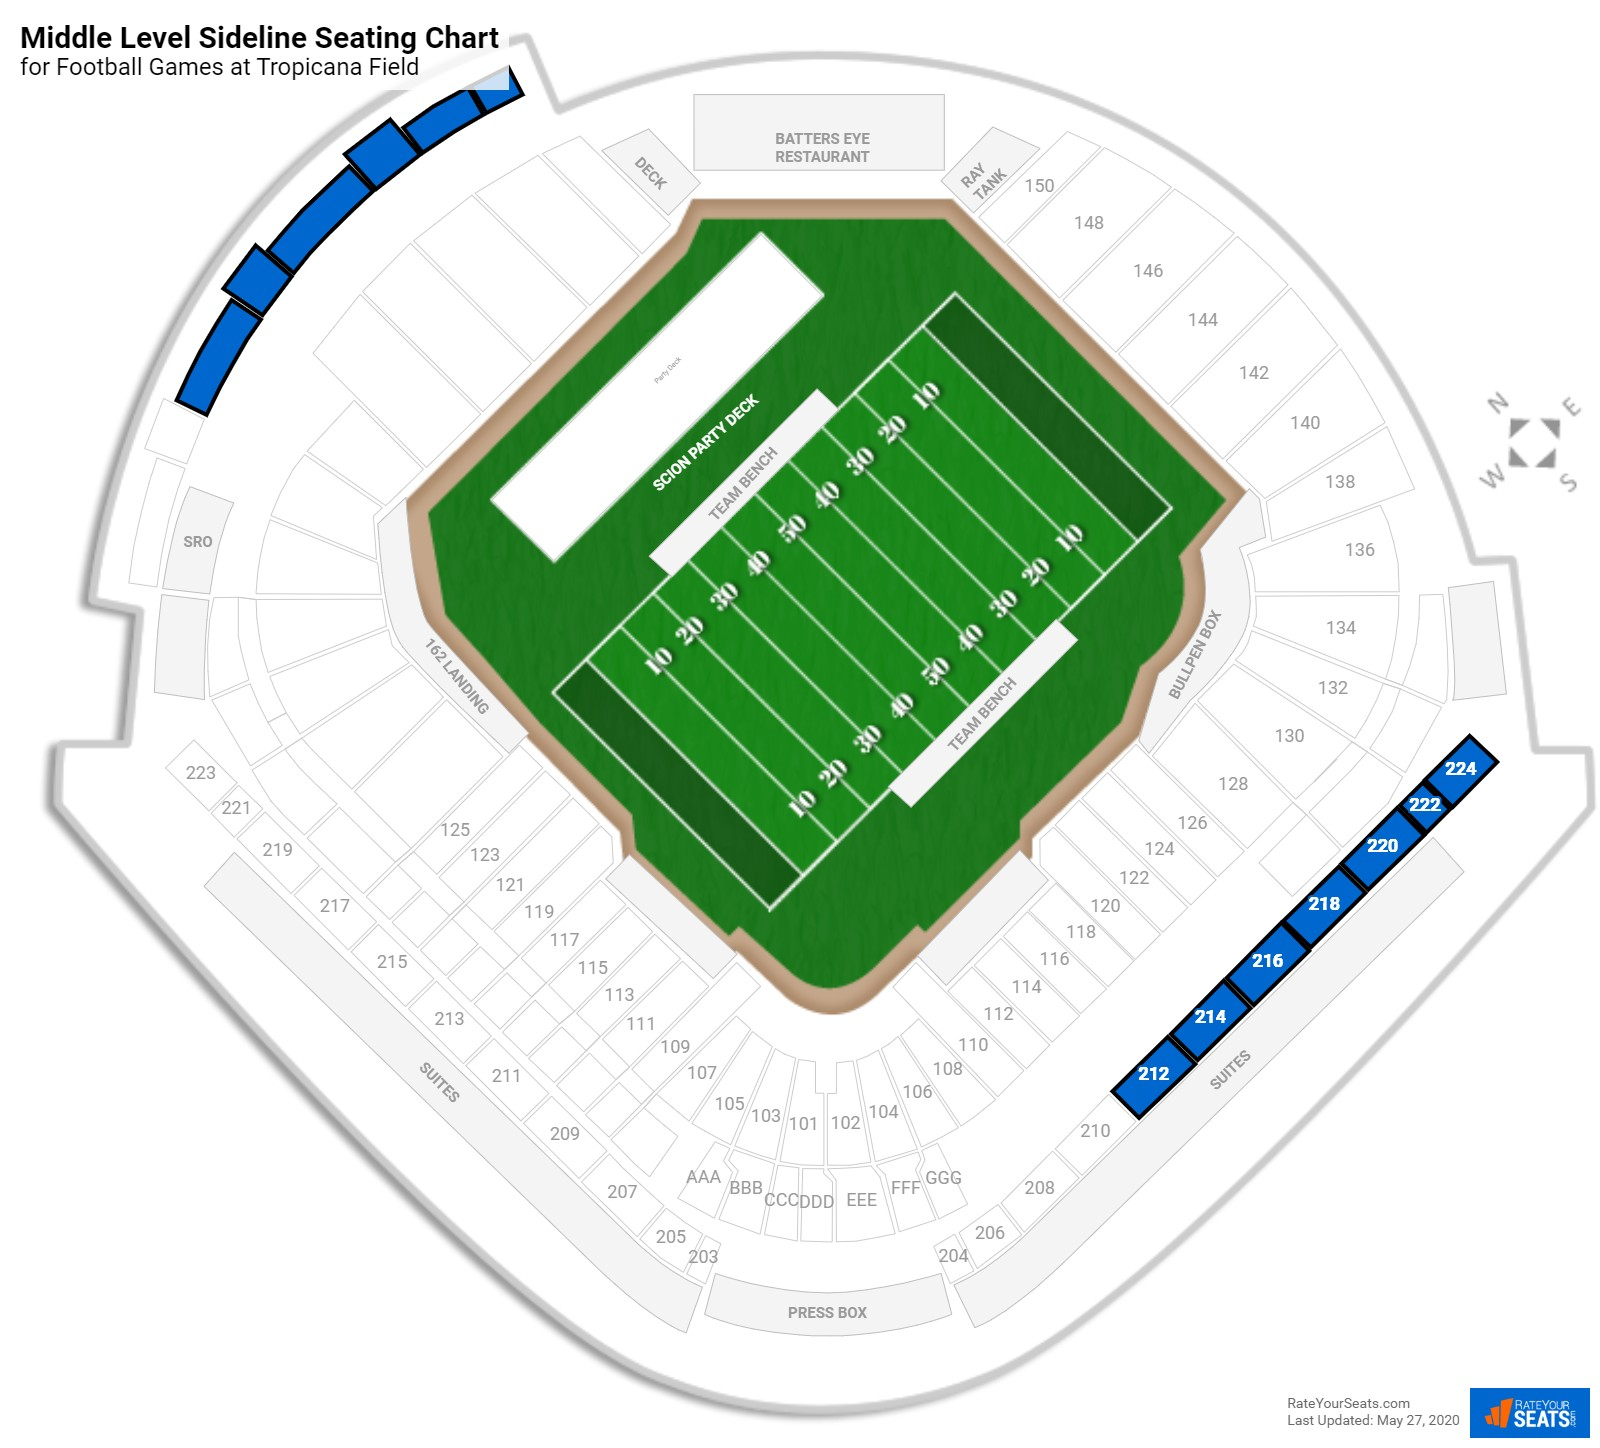 Tropicana Field Middle Level Sideline seating chart